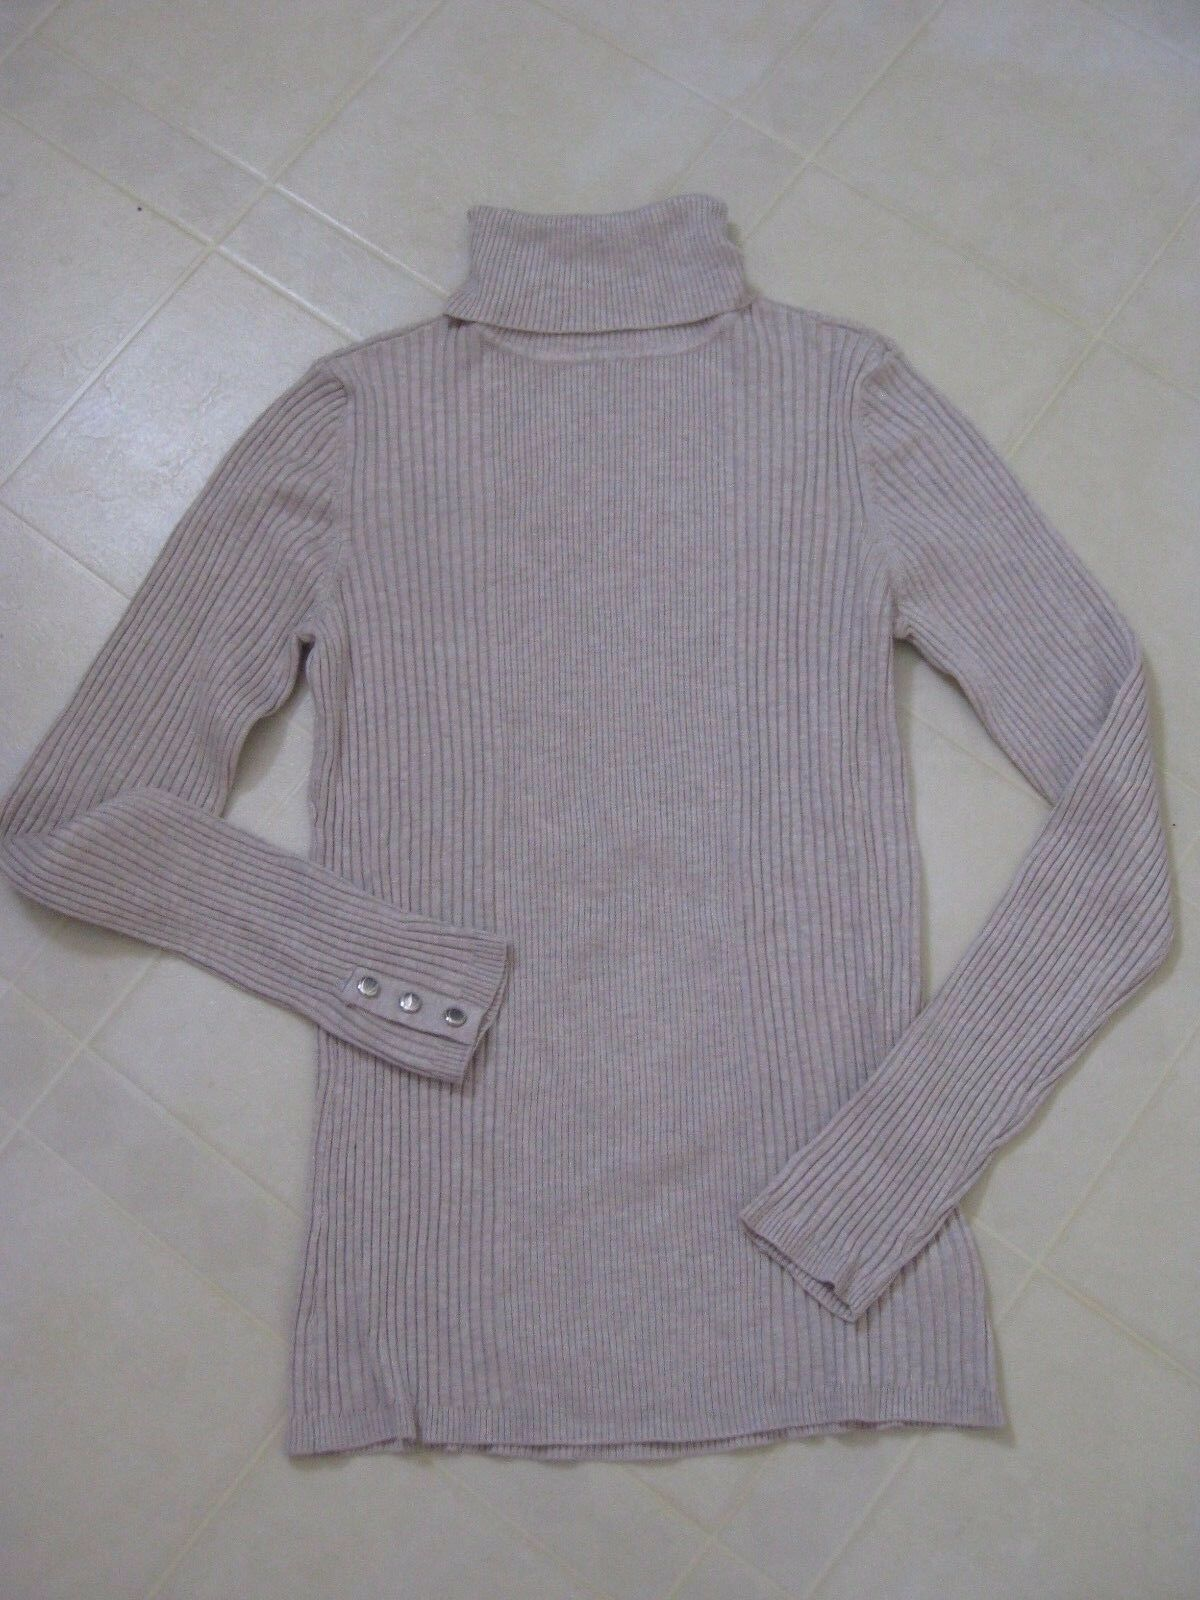 Style & Co. Long Sleeve Top   Sweater with Stud Detail at Sleeve Ends   S   New